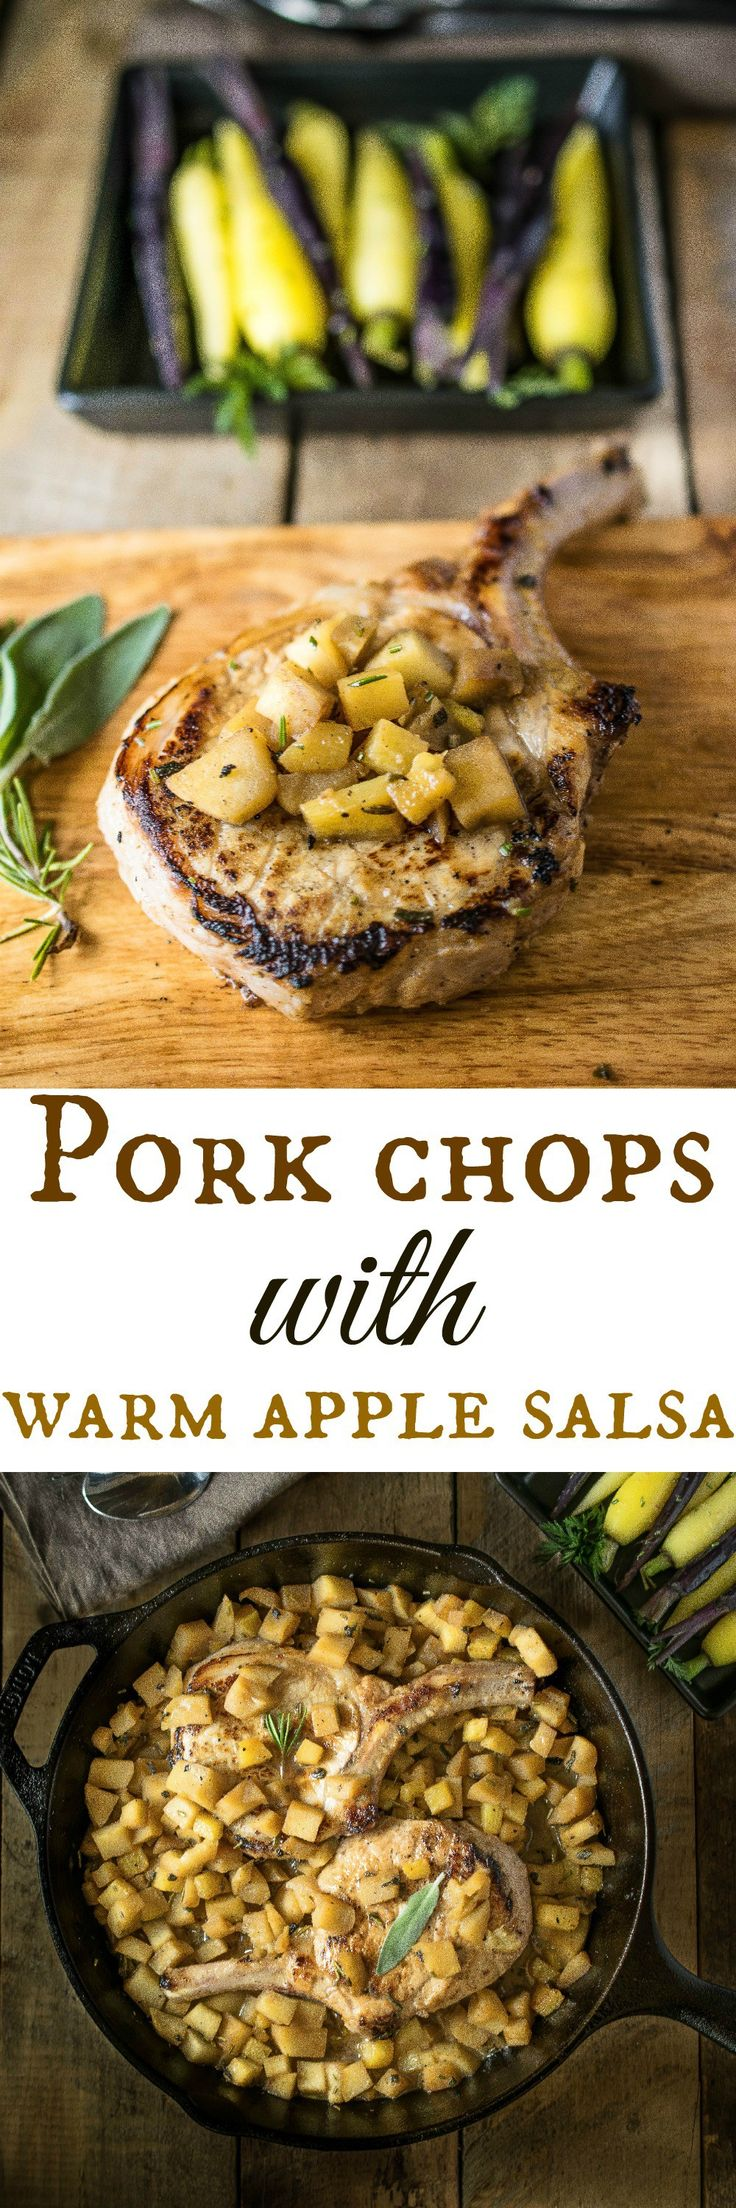 Pork chops with warm apple salsa is an easy one pot dinner perfect for a weeknight, weekend or even dinner party.